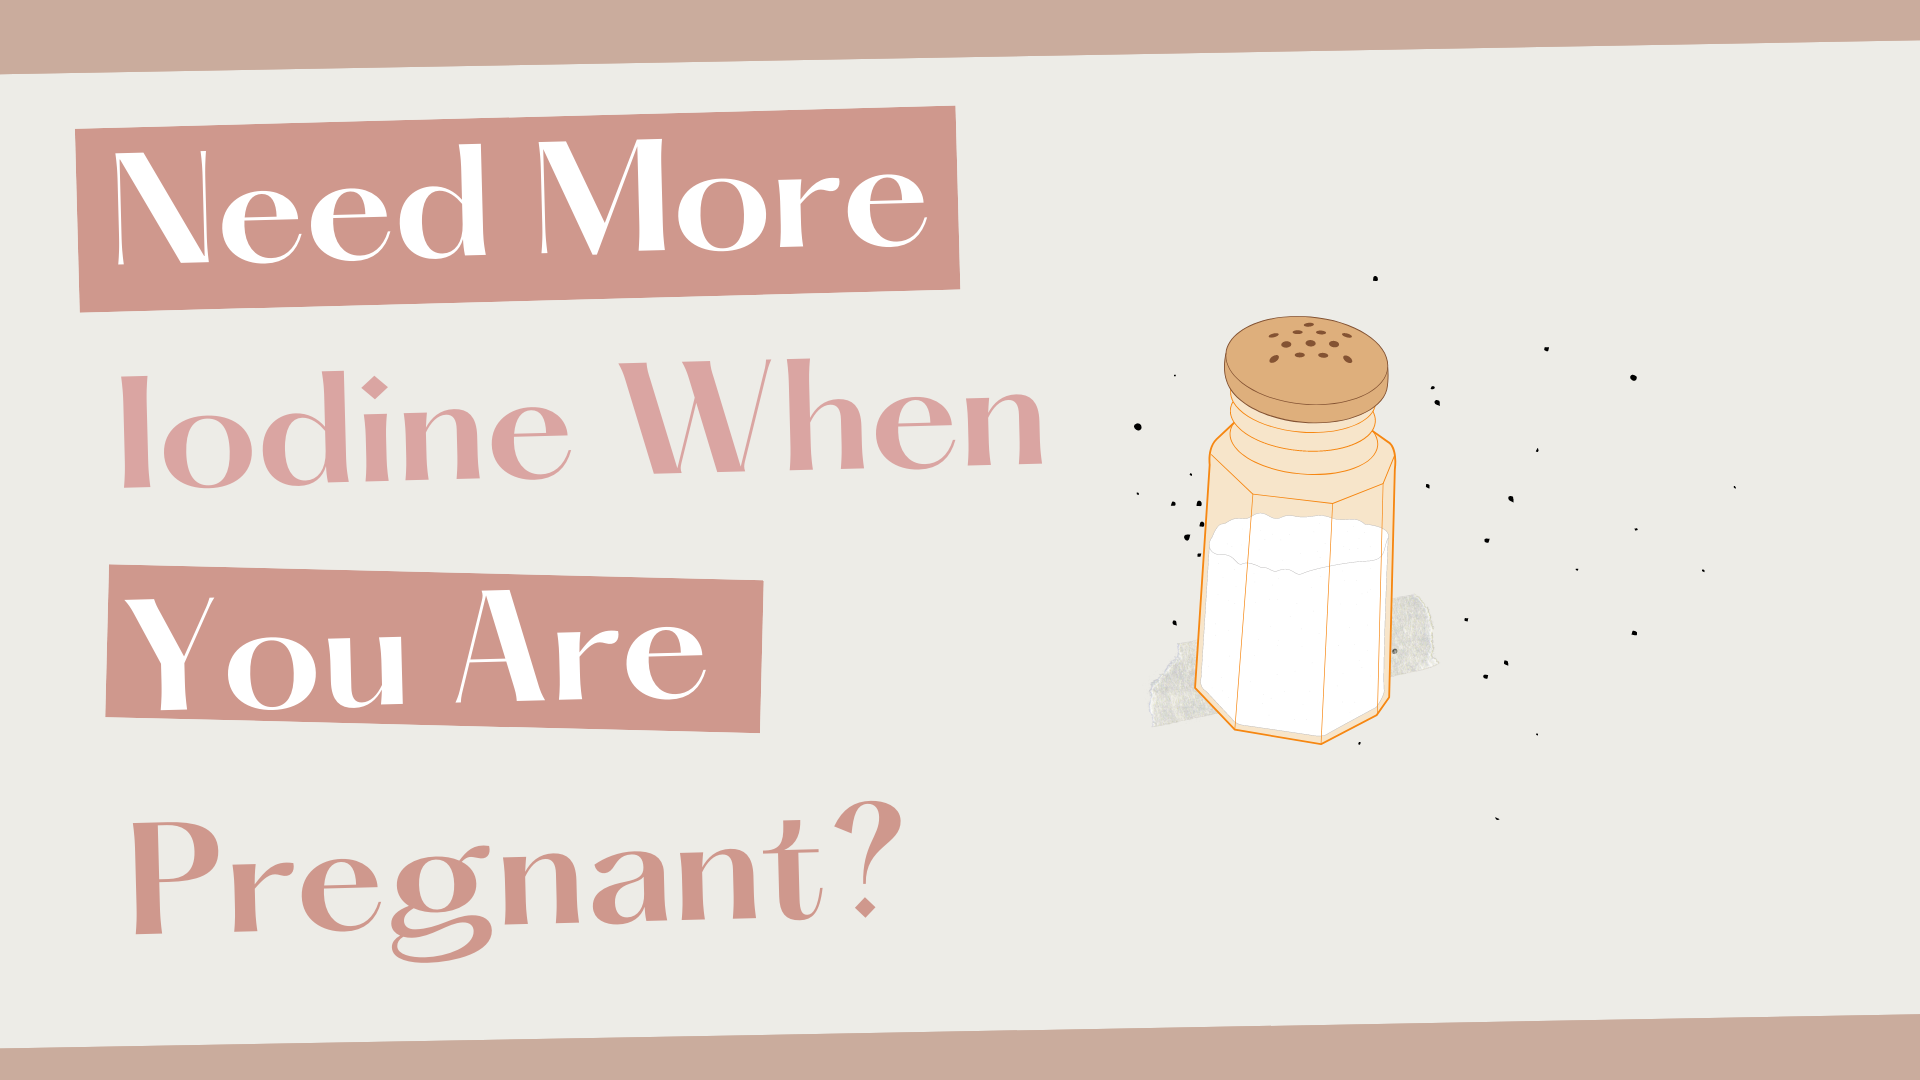 Need More Iodine When You Are Pregnant?